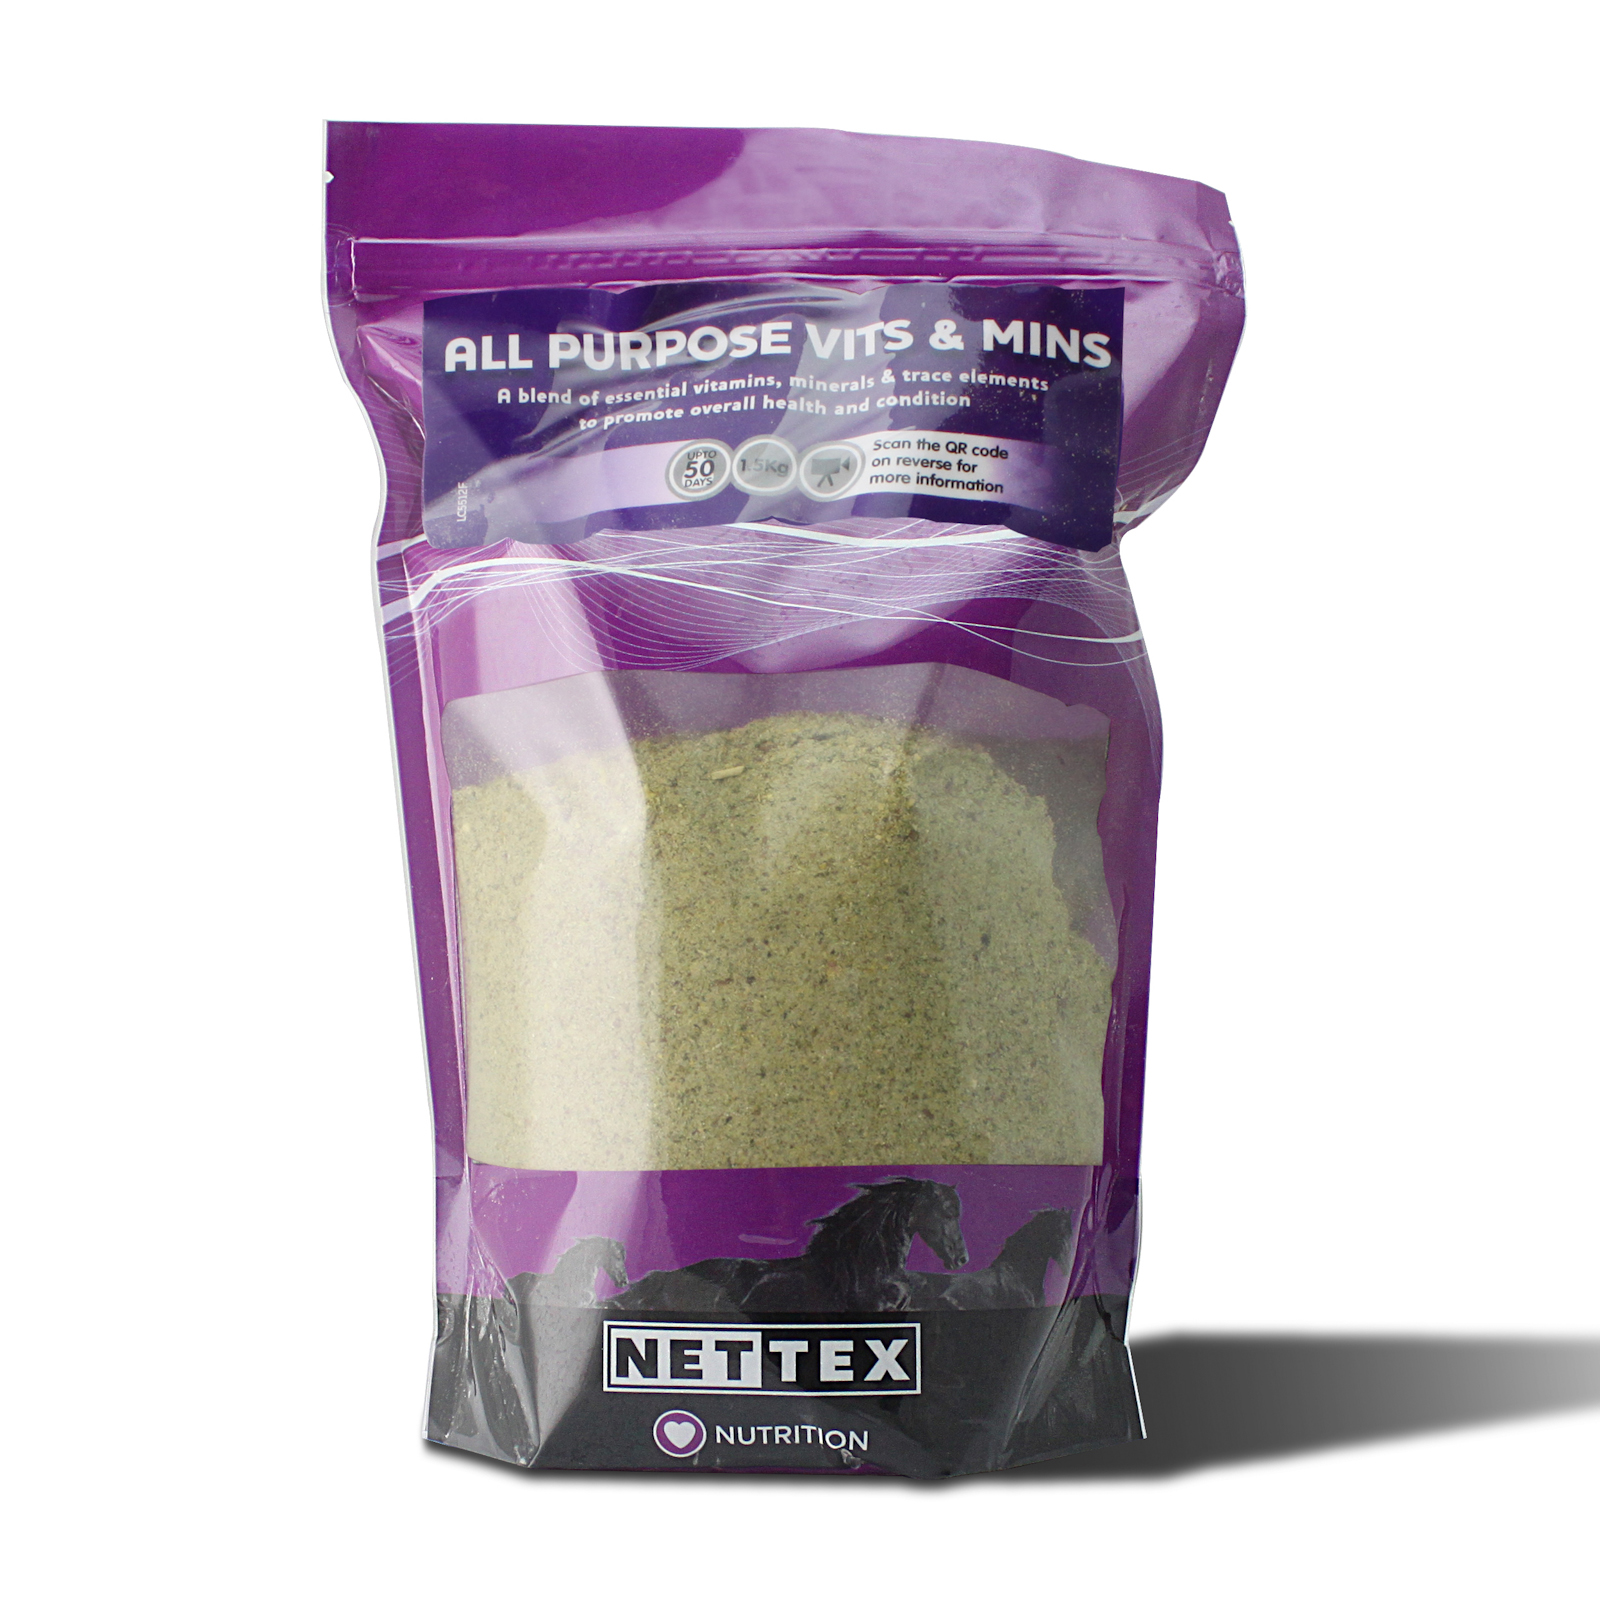 Nettex All purpose vits & Mins Supplement Pouch 1.5 kg